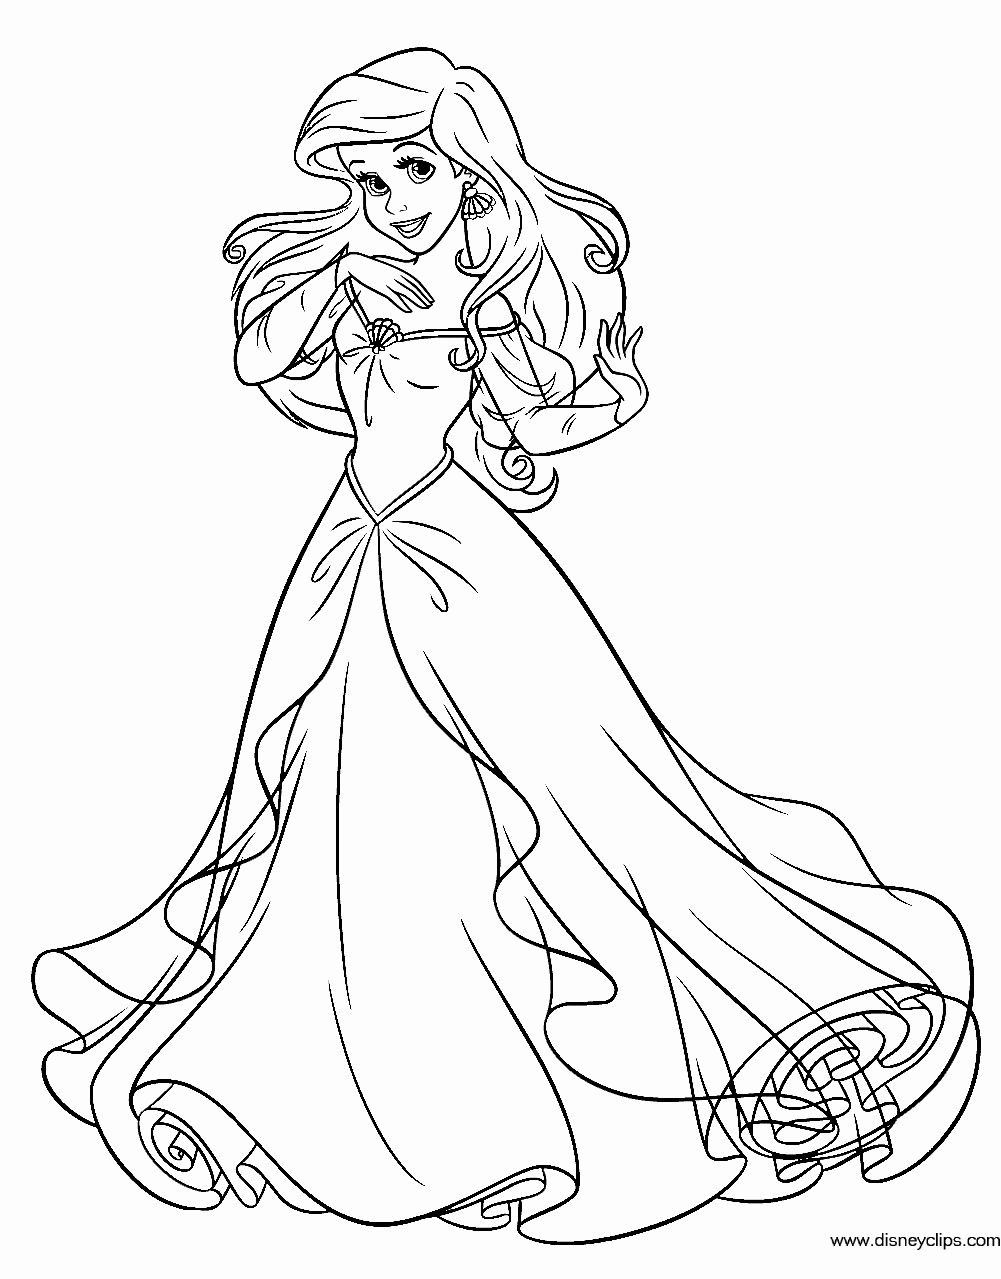 Ariel The Little Mermaid Coloring Page Youngandtae Com In 2020 Disney Princess Coloring Pages Mermaid Coloring Book Ariel Coloring Pages